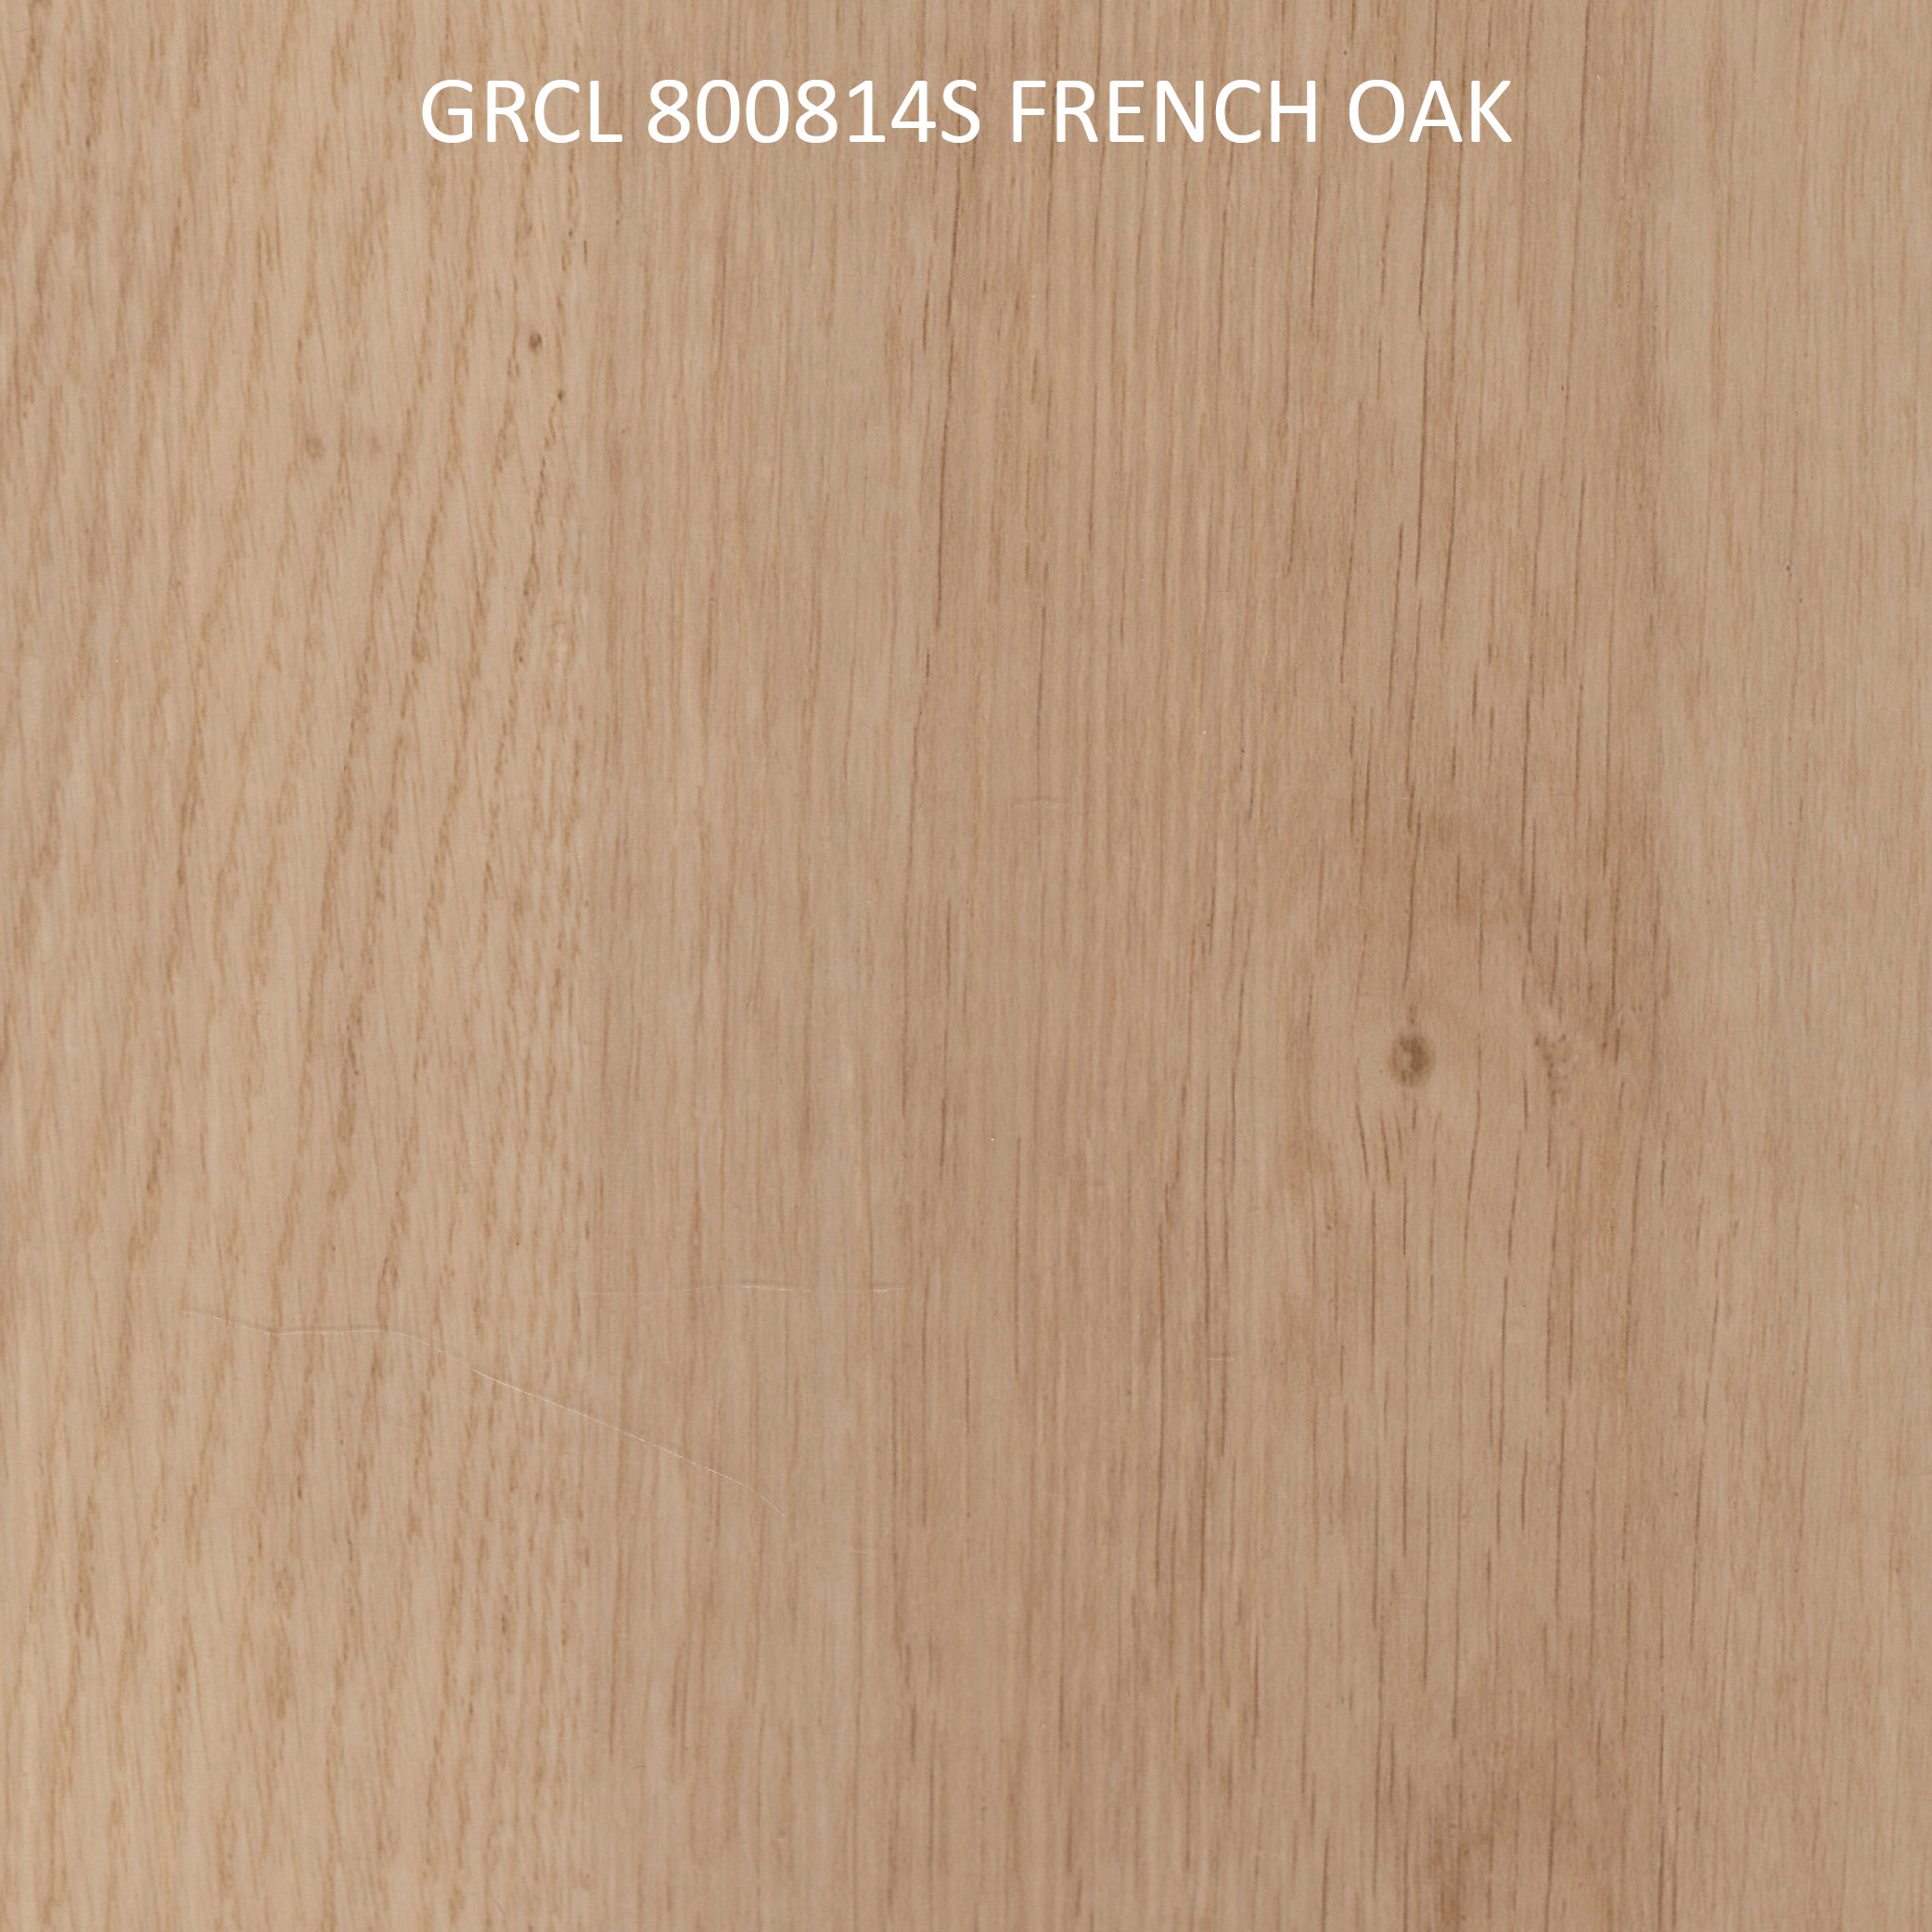 GRCL 800814S FRENCH OAK